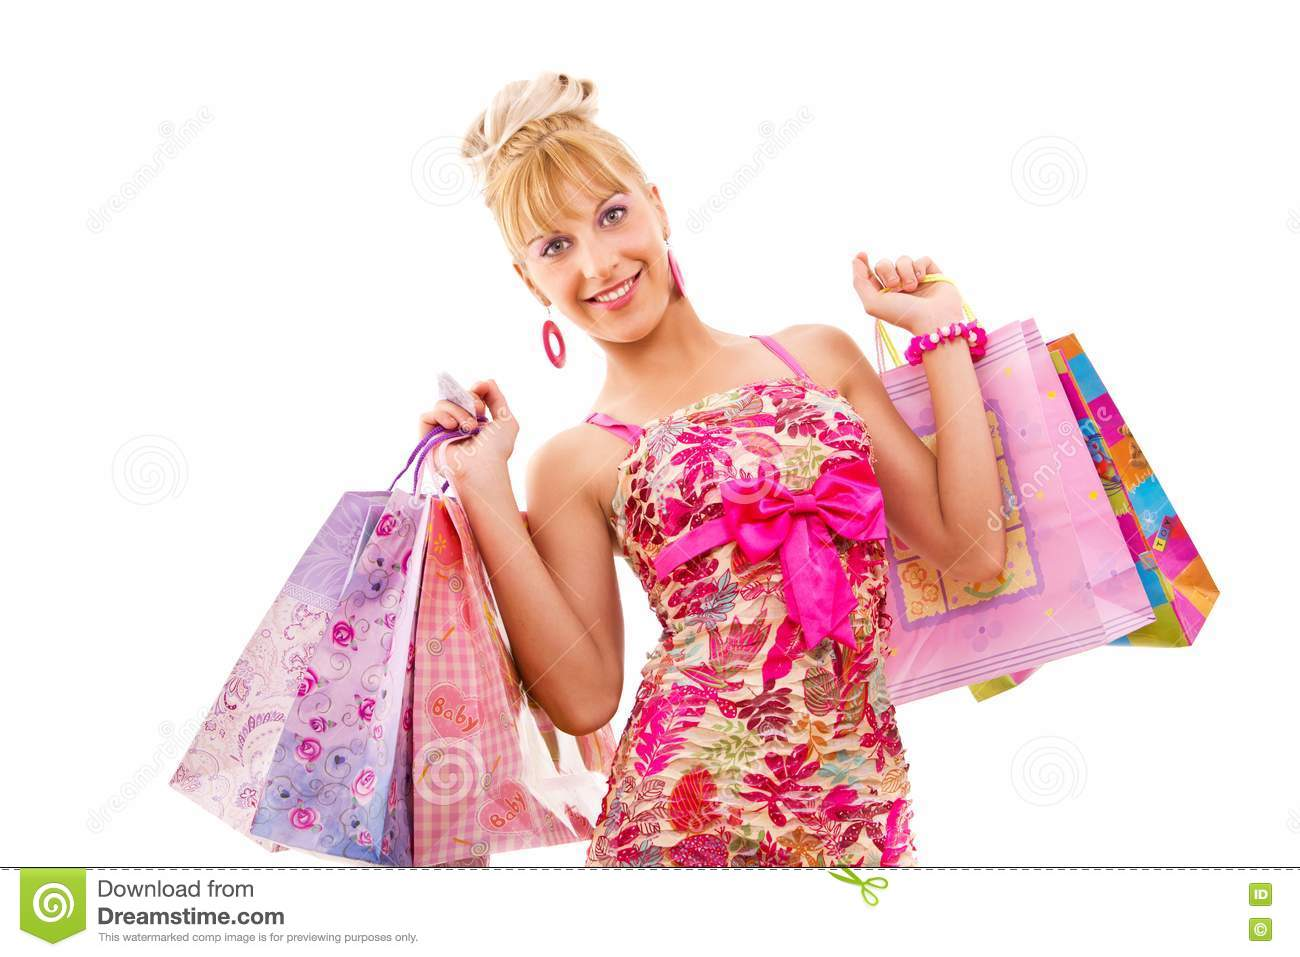 Simple  Woman Wearing Blue Dress And Holding Colorful Shopping Bags Up In Air